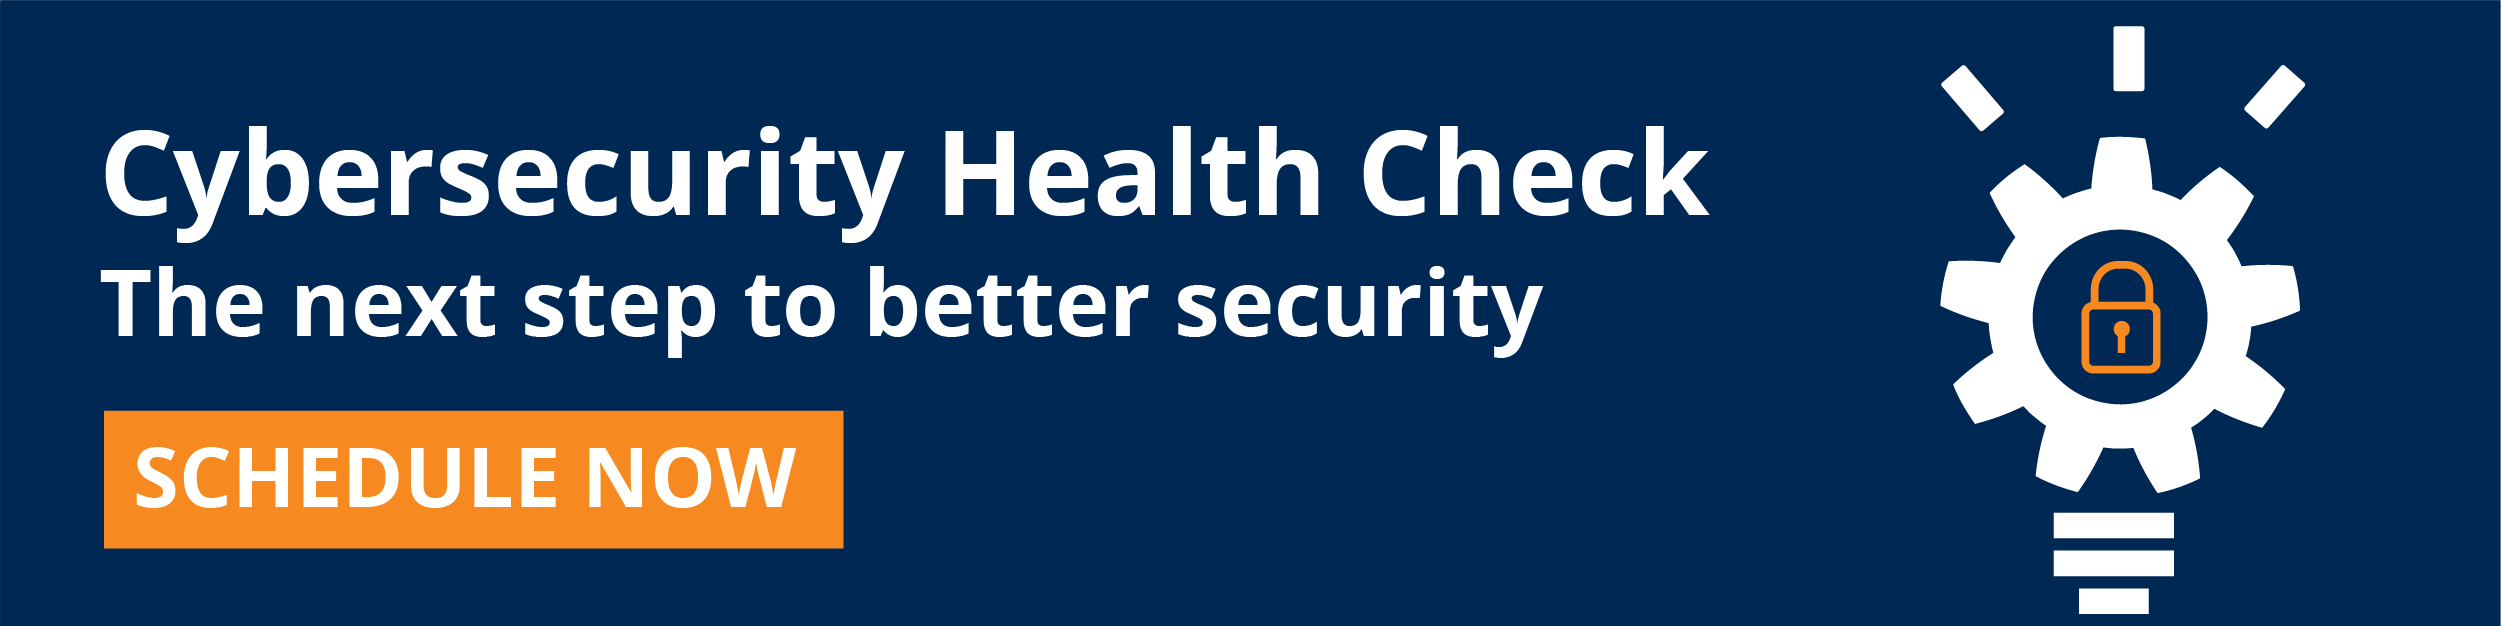 Cybersecurity Health Check_TEMPLATE 10-1